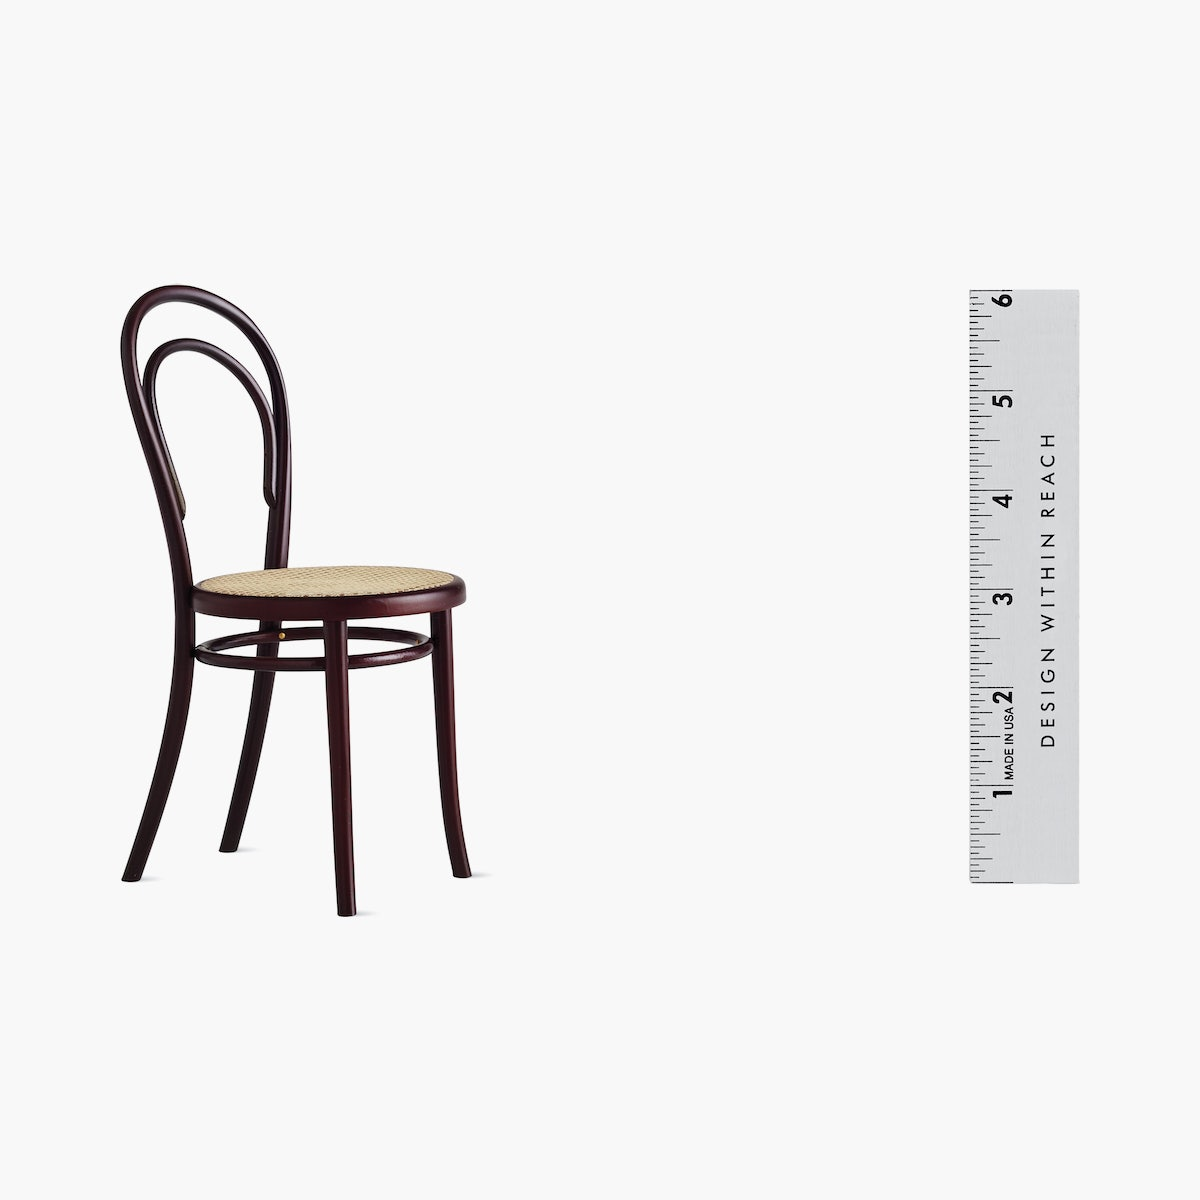 Vitra Miniatures Collection, Thonet No. 14